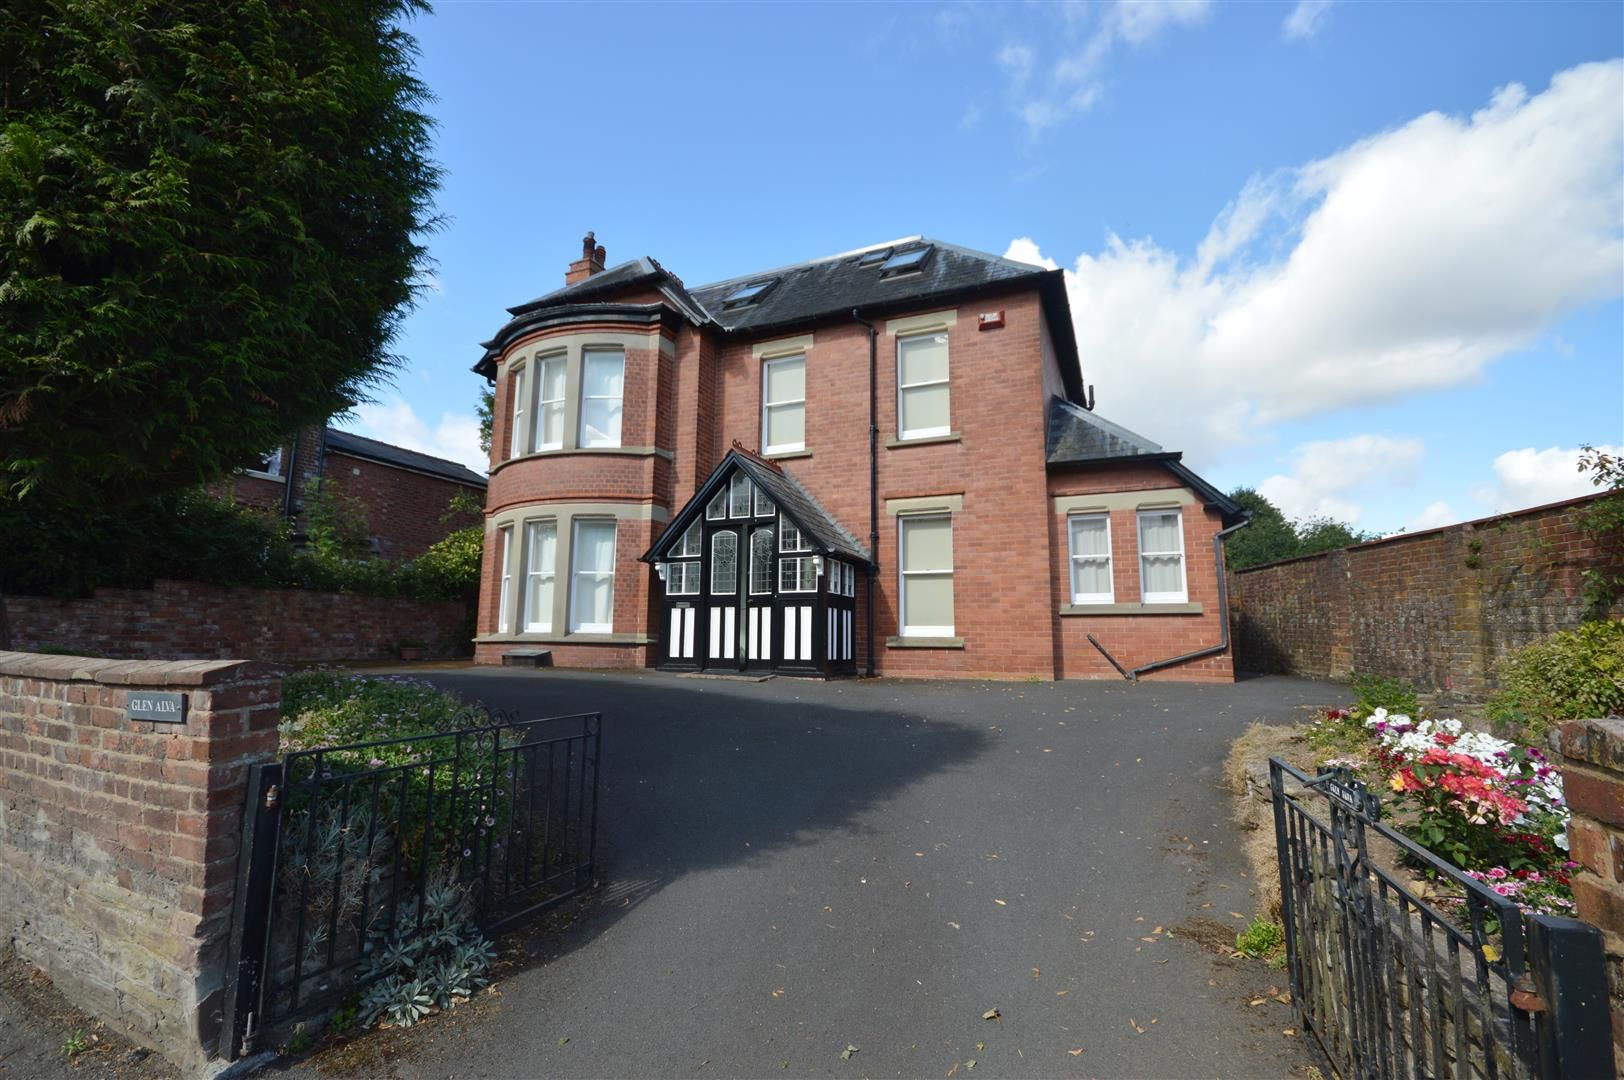 6 bed detached for sale in Leominster - Property Image 1